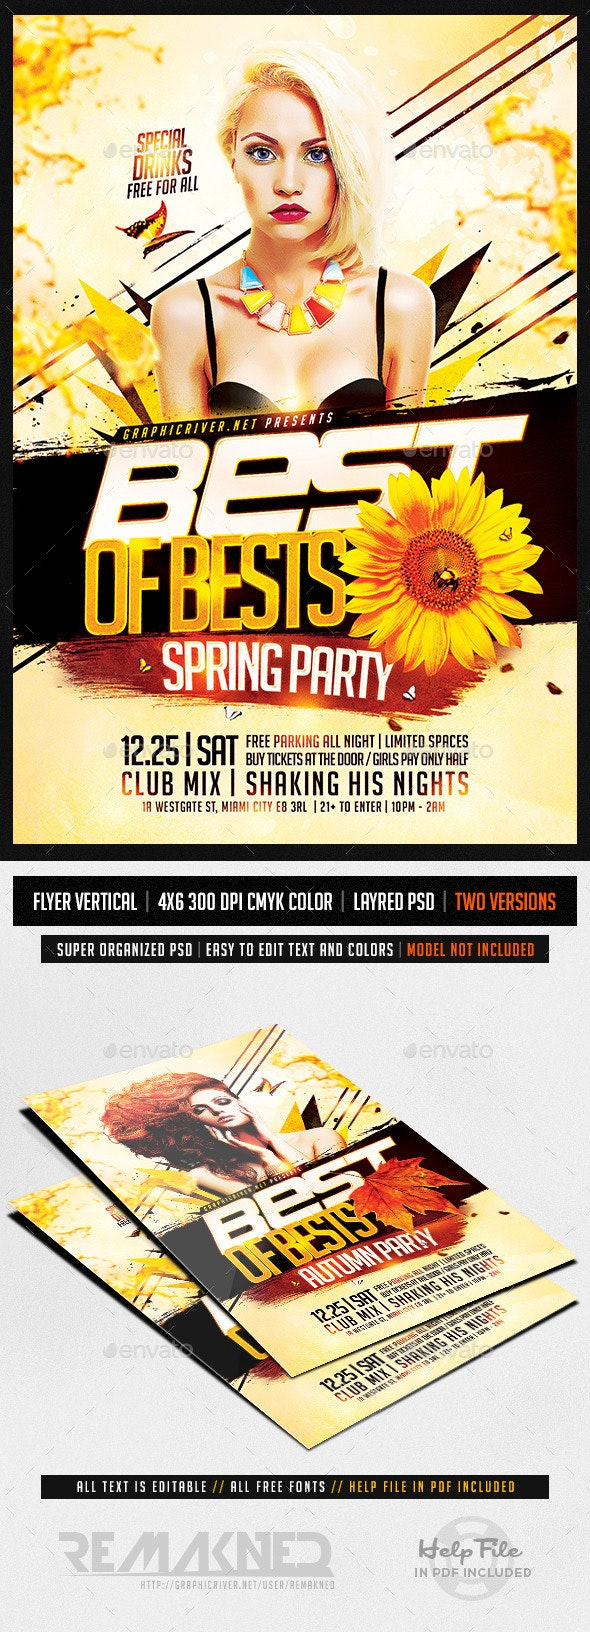 Bests Music Station | Flyer Template PSD - Flyers Print Templates